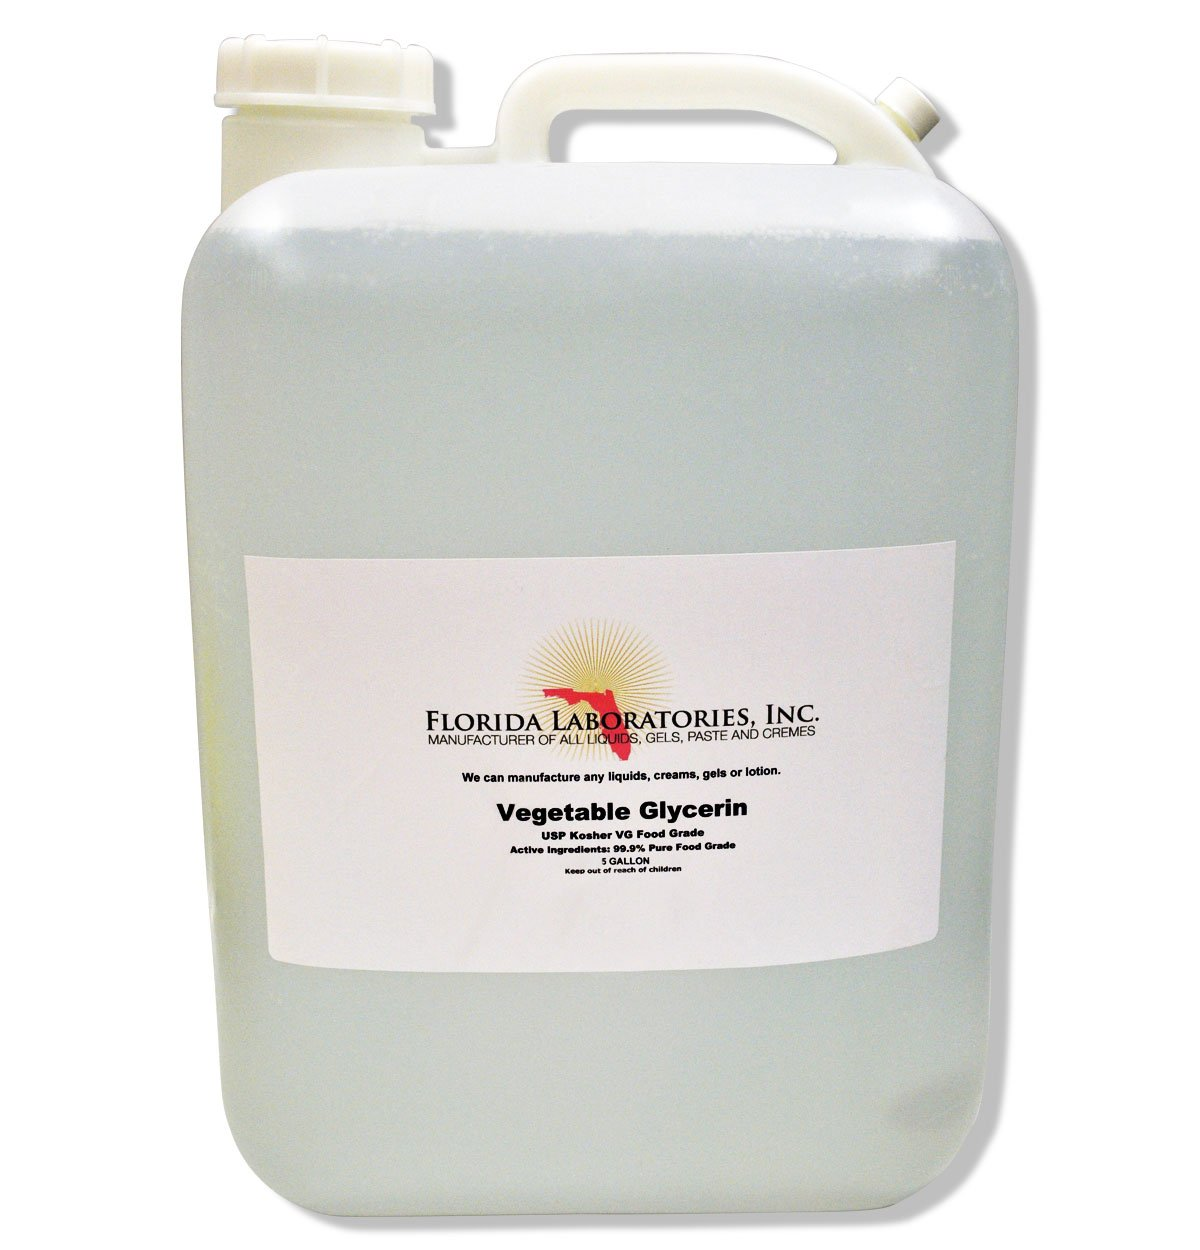 Five Gallon Vegetable Glycerin Food Grade USP